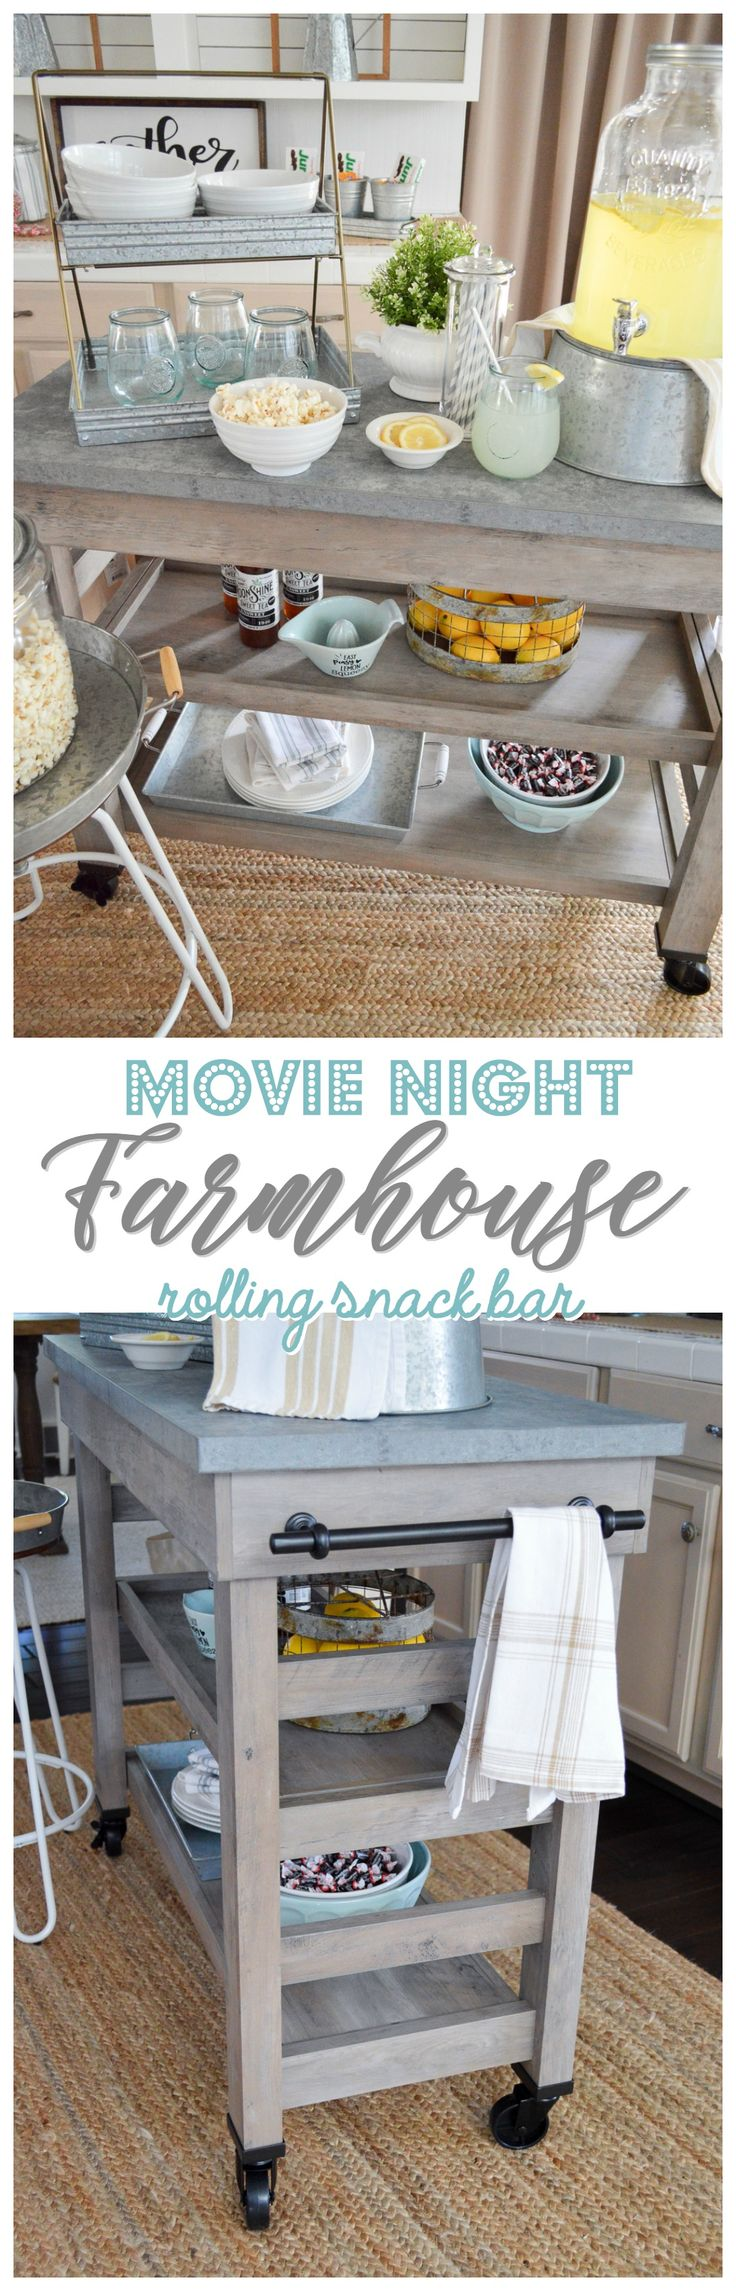 The New Modern Farmhouse Multi-Purpose Cart is just that! It's living in our kitchen as an island, and I just turned it into a family movie night snack bar/serving station! I can see so many uses for this super cute farm style furniture piece. It's got a concrete look top and even has wheels!! Sponsored in partnership with Better Homes & Gardens at Walmart